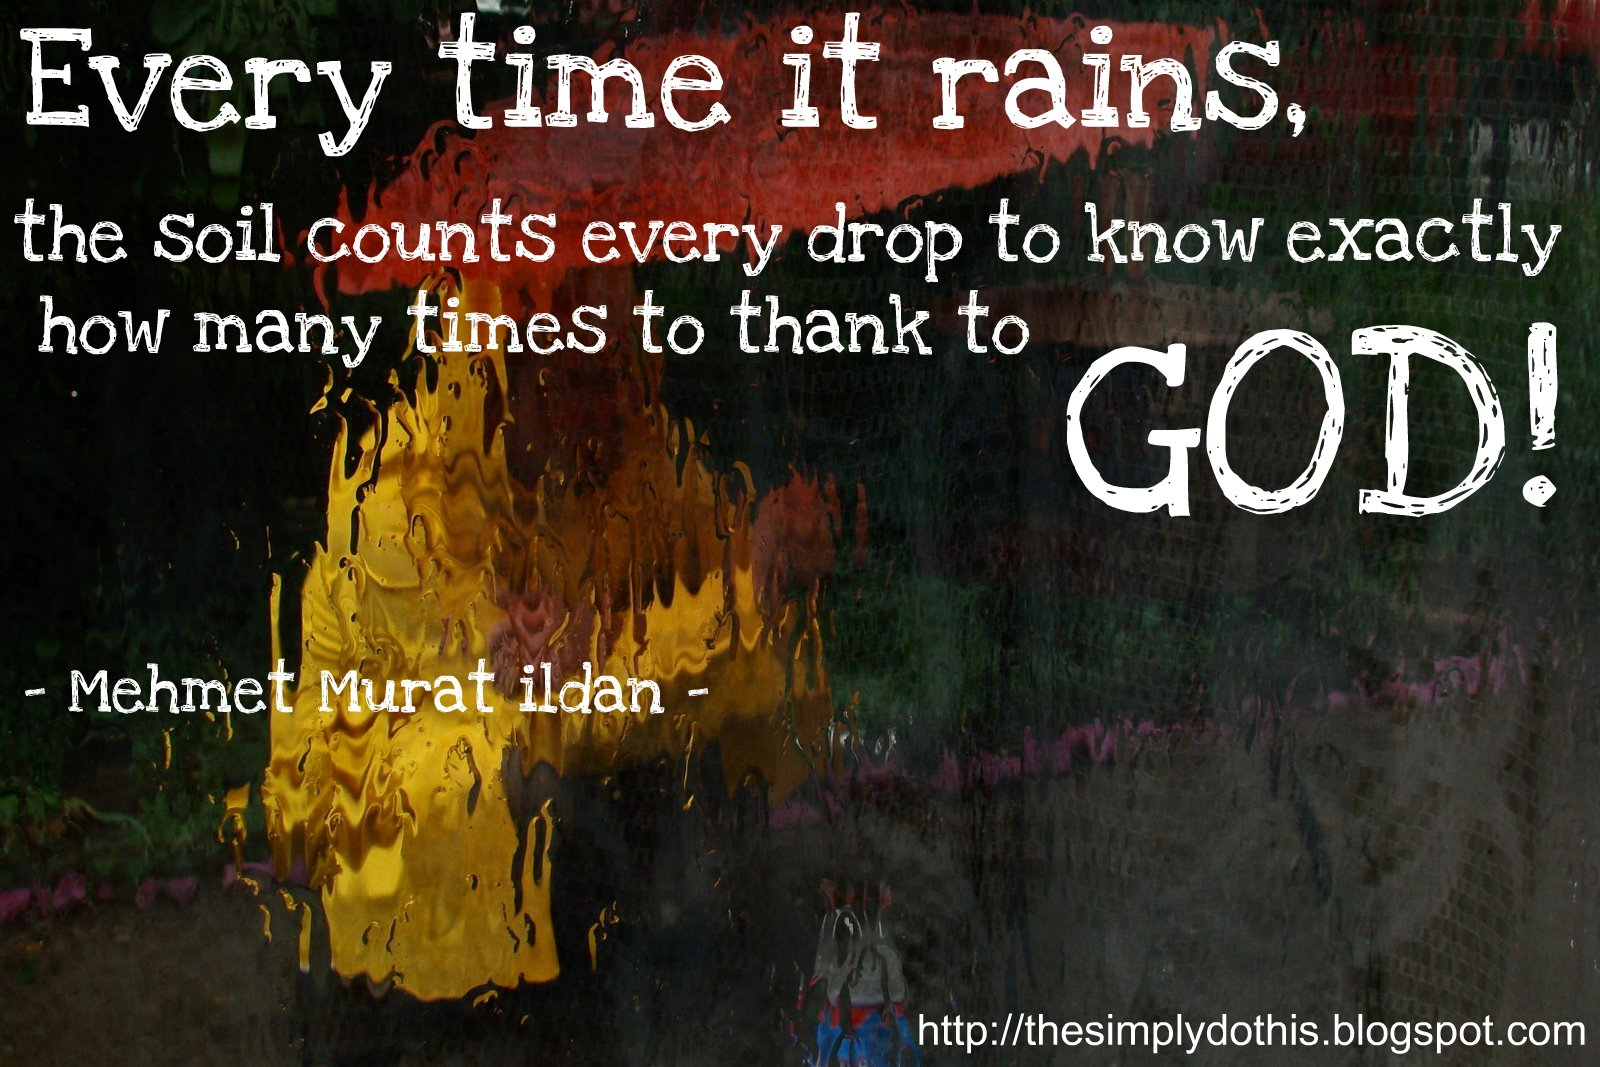 Thanking God Quotes Simply Do This. Daily Inspiration Quote.